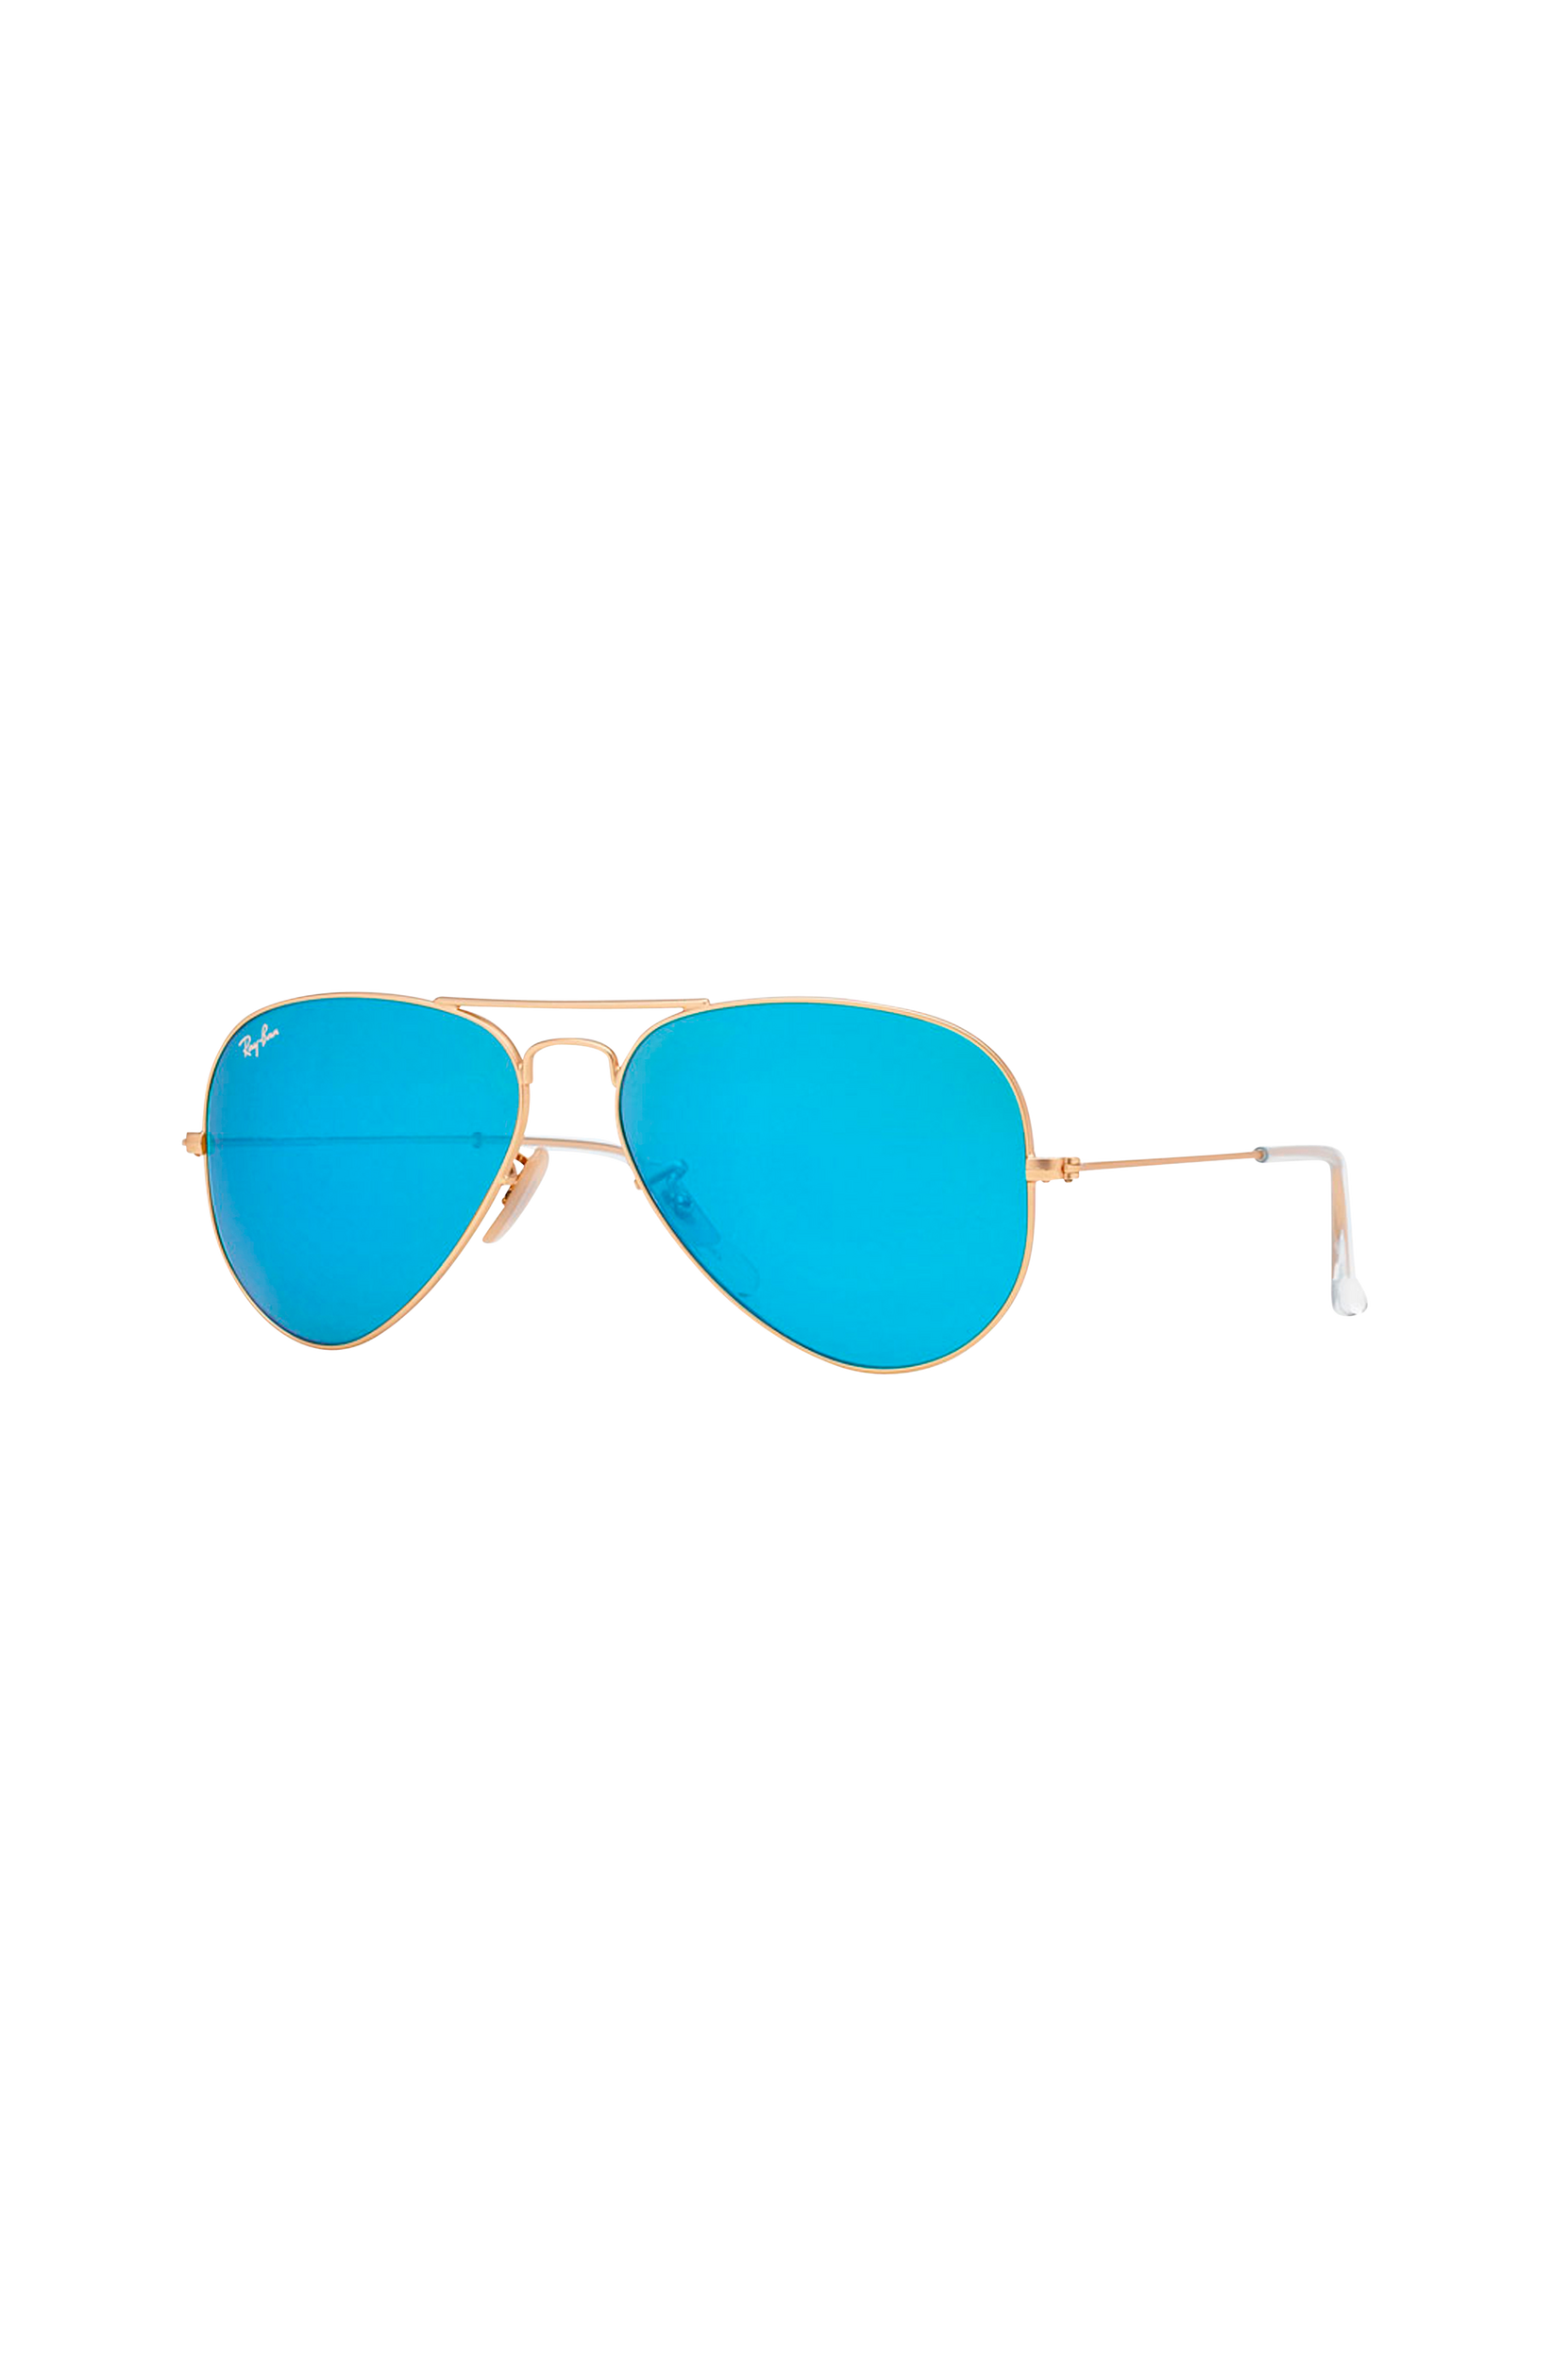 Aviator-aurinkolasit RB3025-112/17 Matte Gold